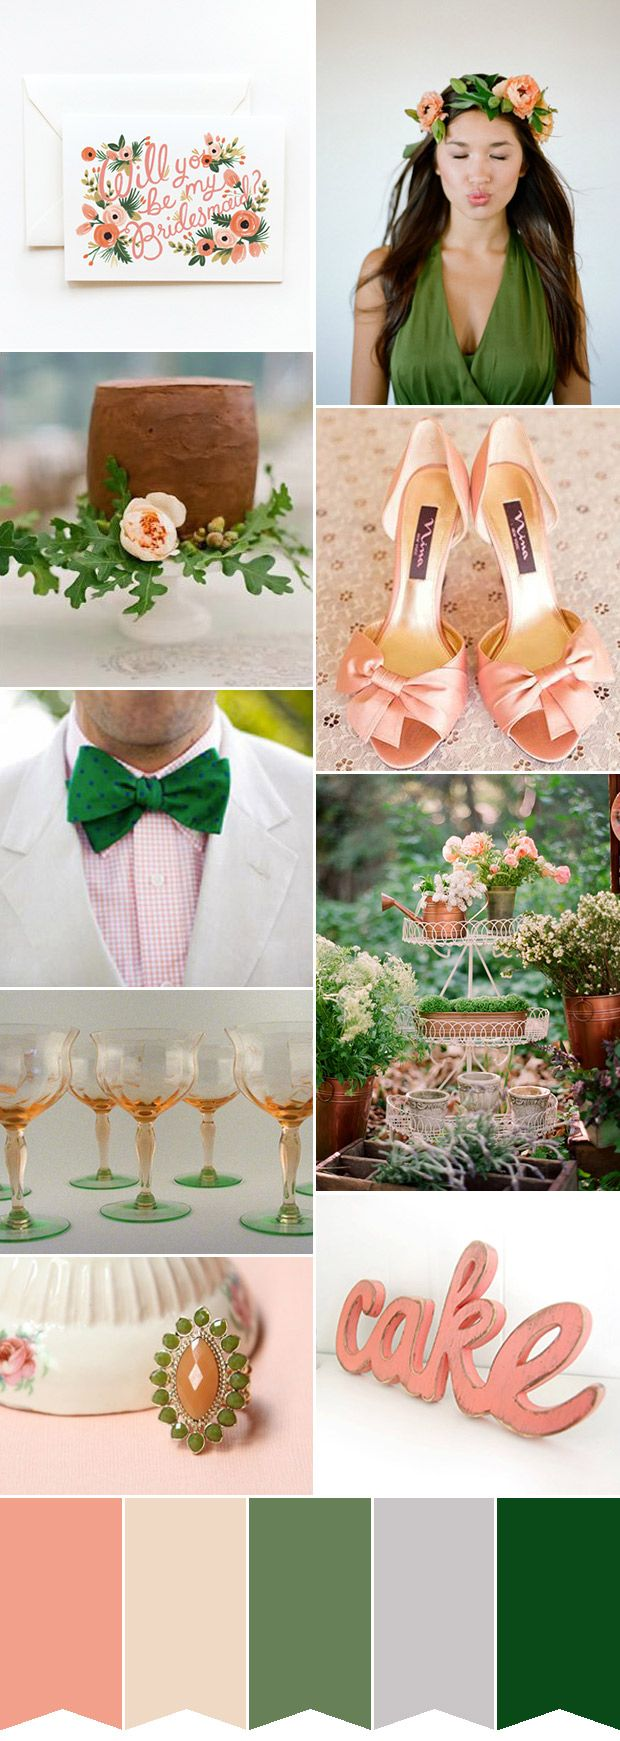 Peach and green wedding ideas - the perfect green and peach wedding color palette | www.onefabday.com #katelyn